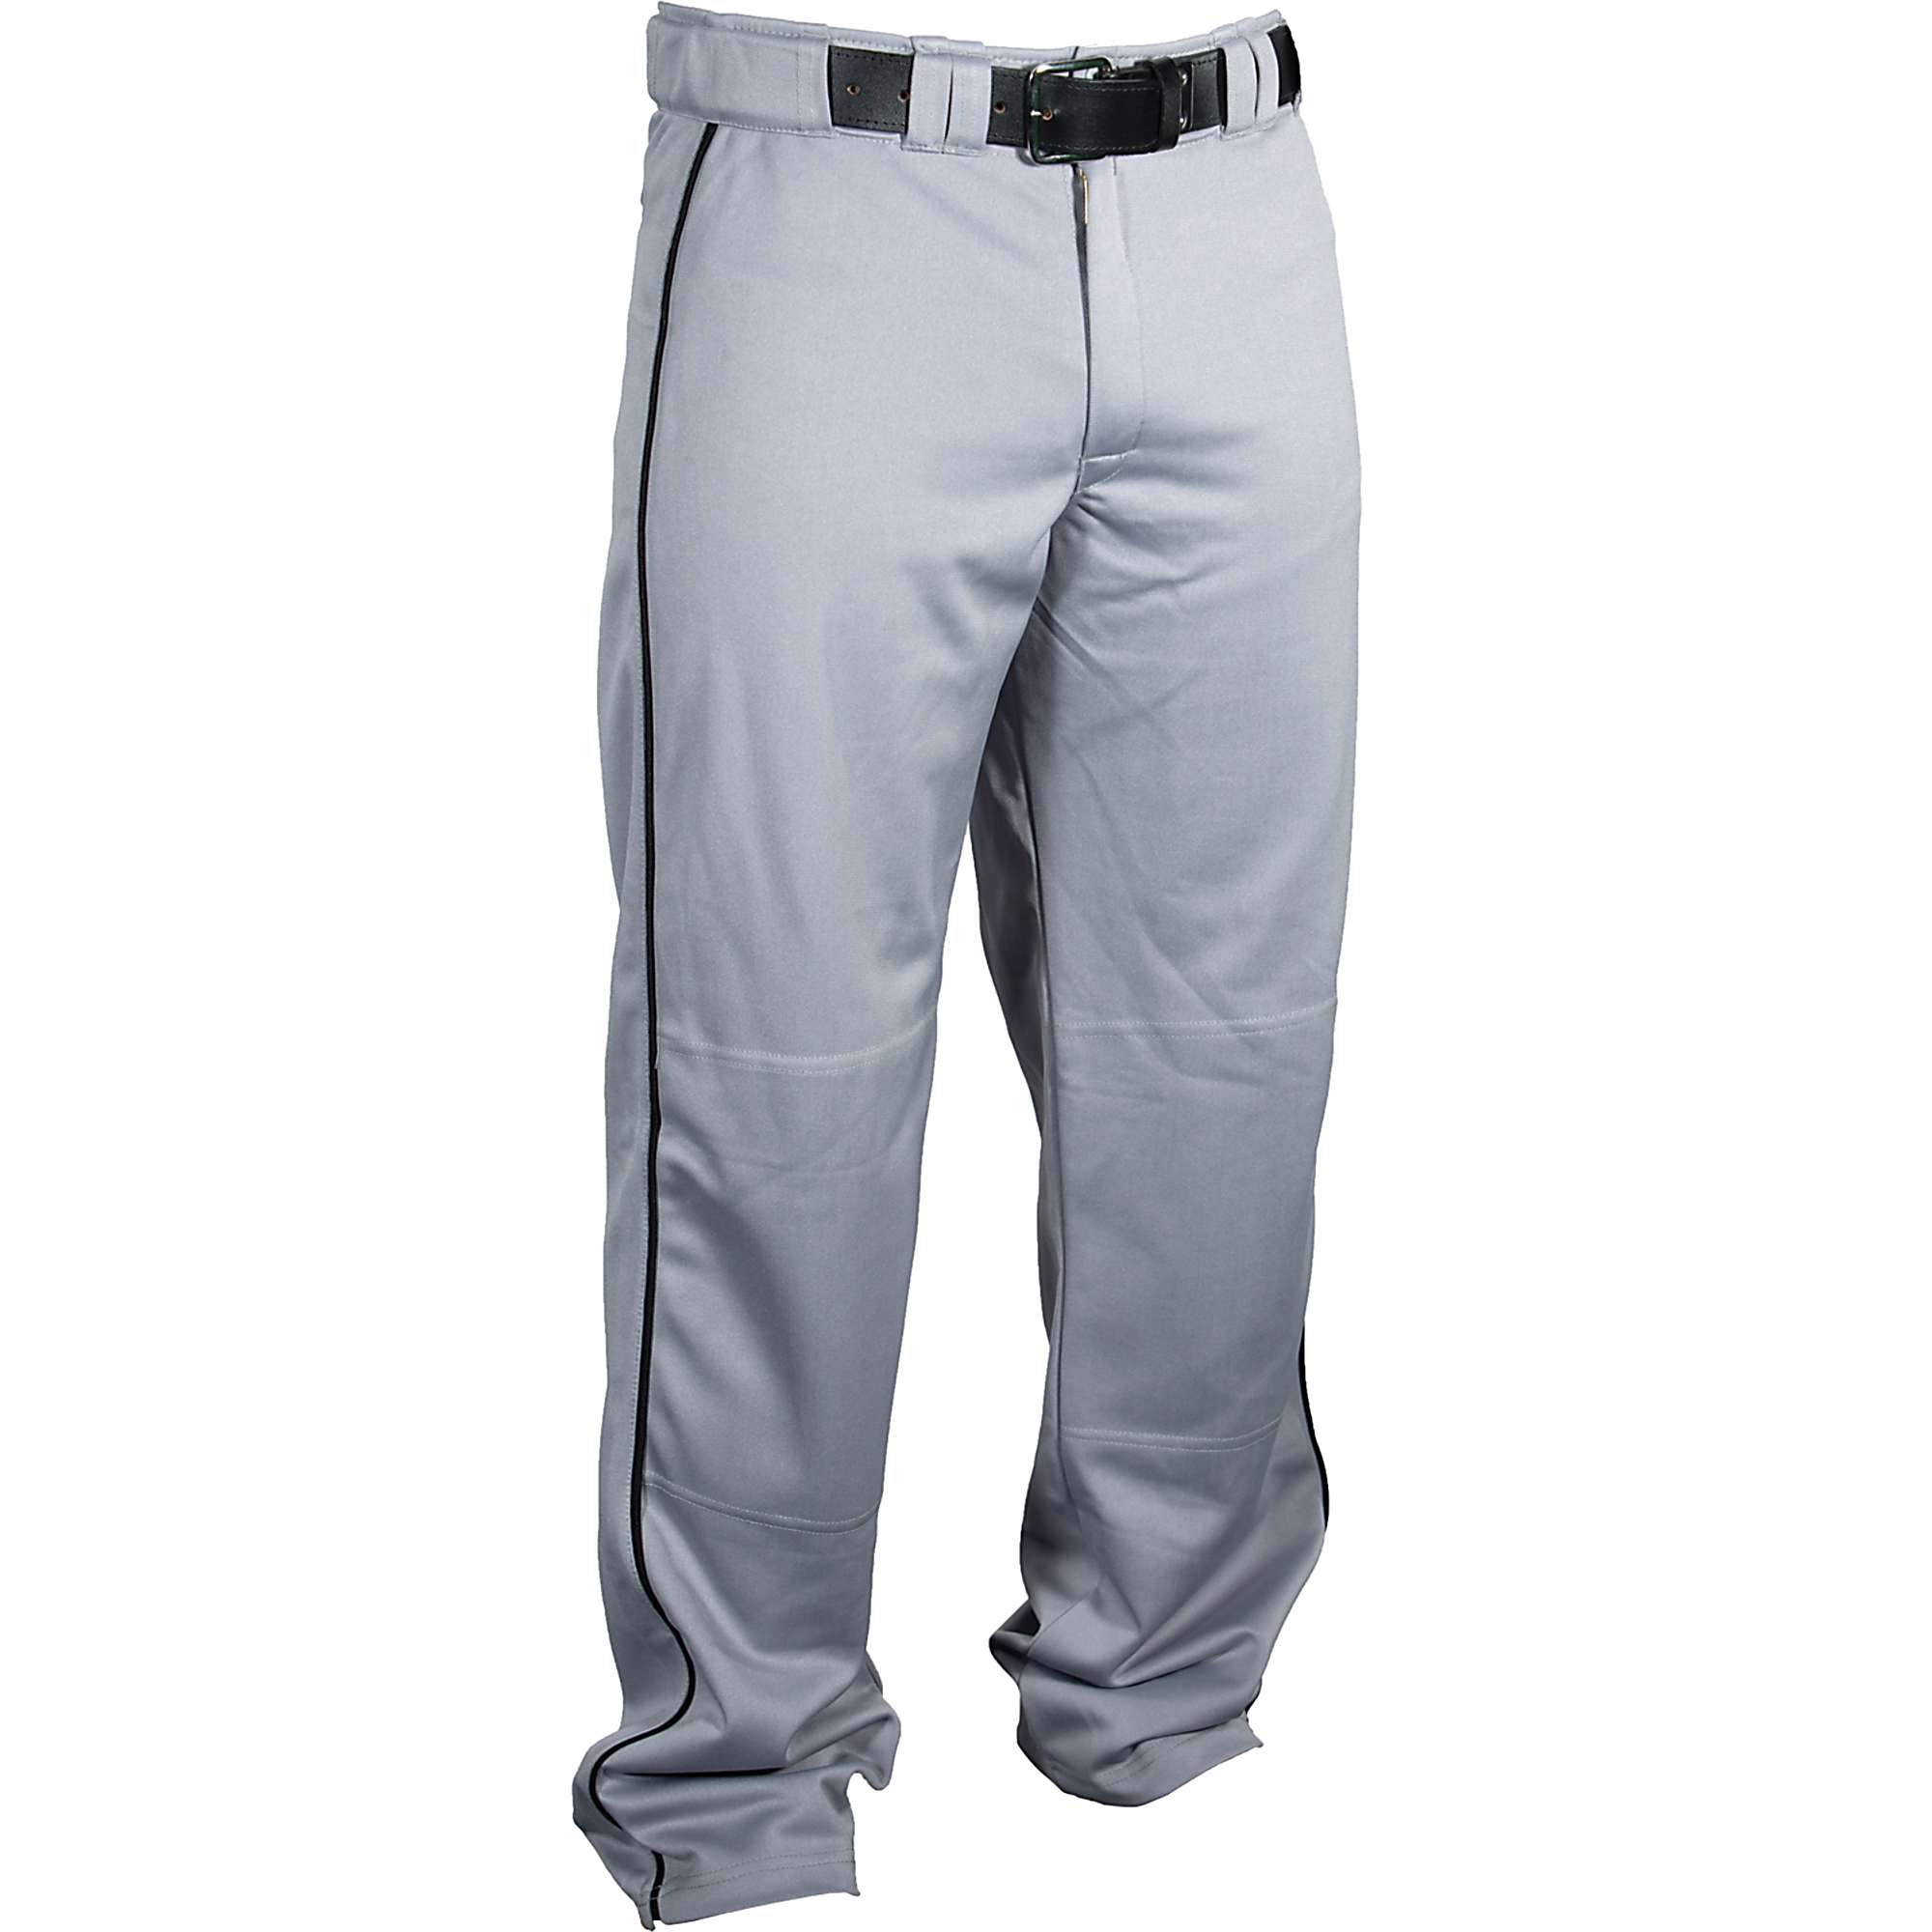 These premium knee-high baseball pants feature a cloth with 2-way Rawlings Men's.